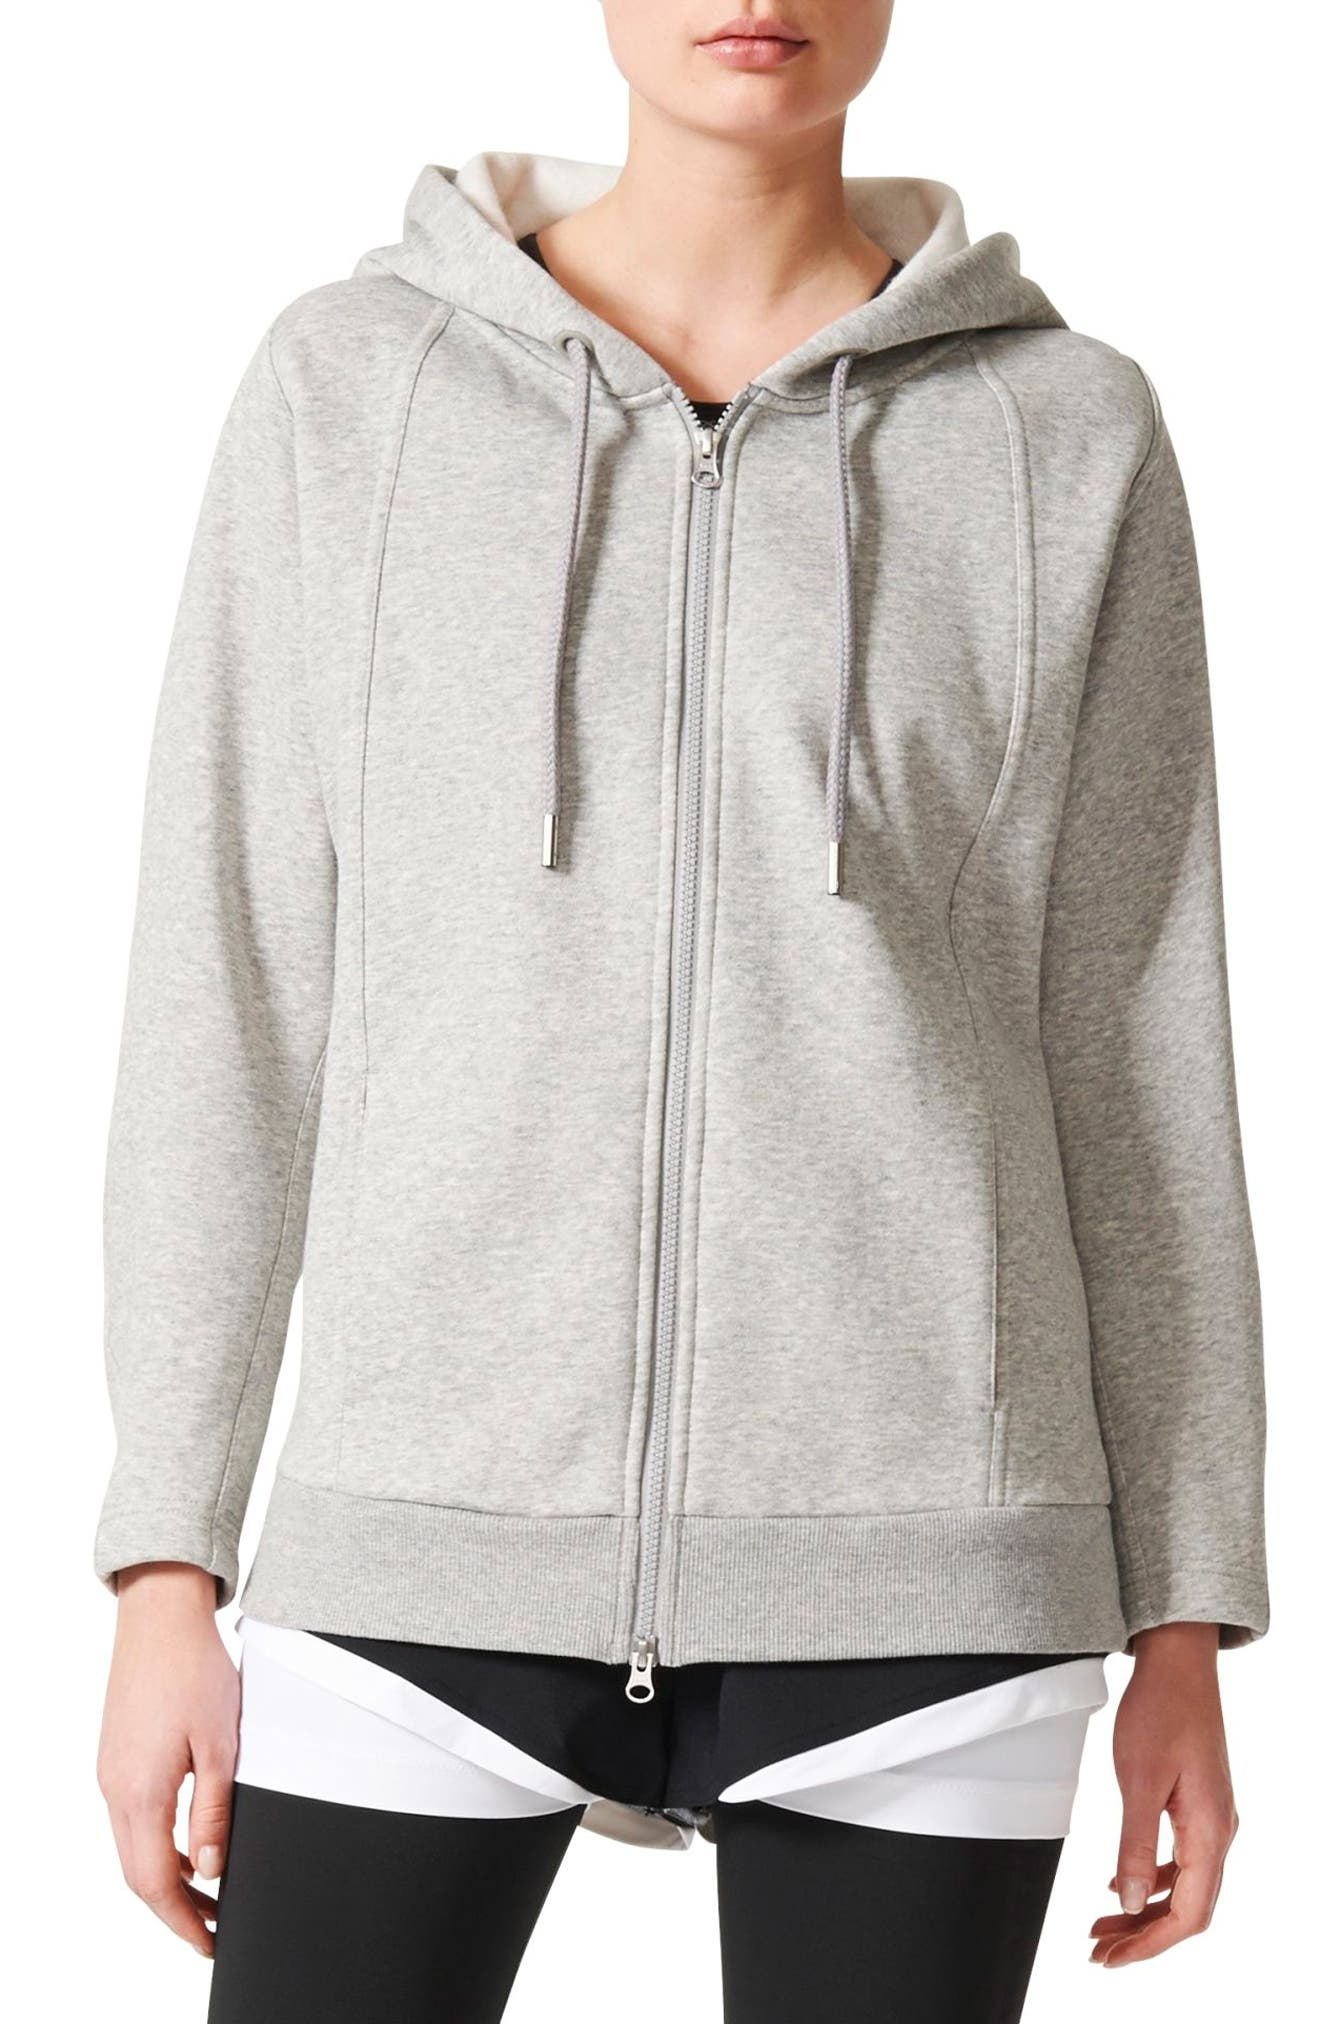 Essentials Hoodie,                             Main thumbnail 1, color,                             035